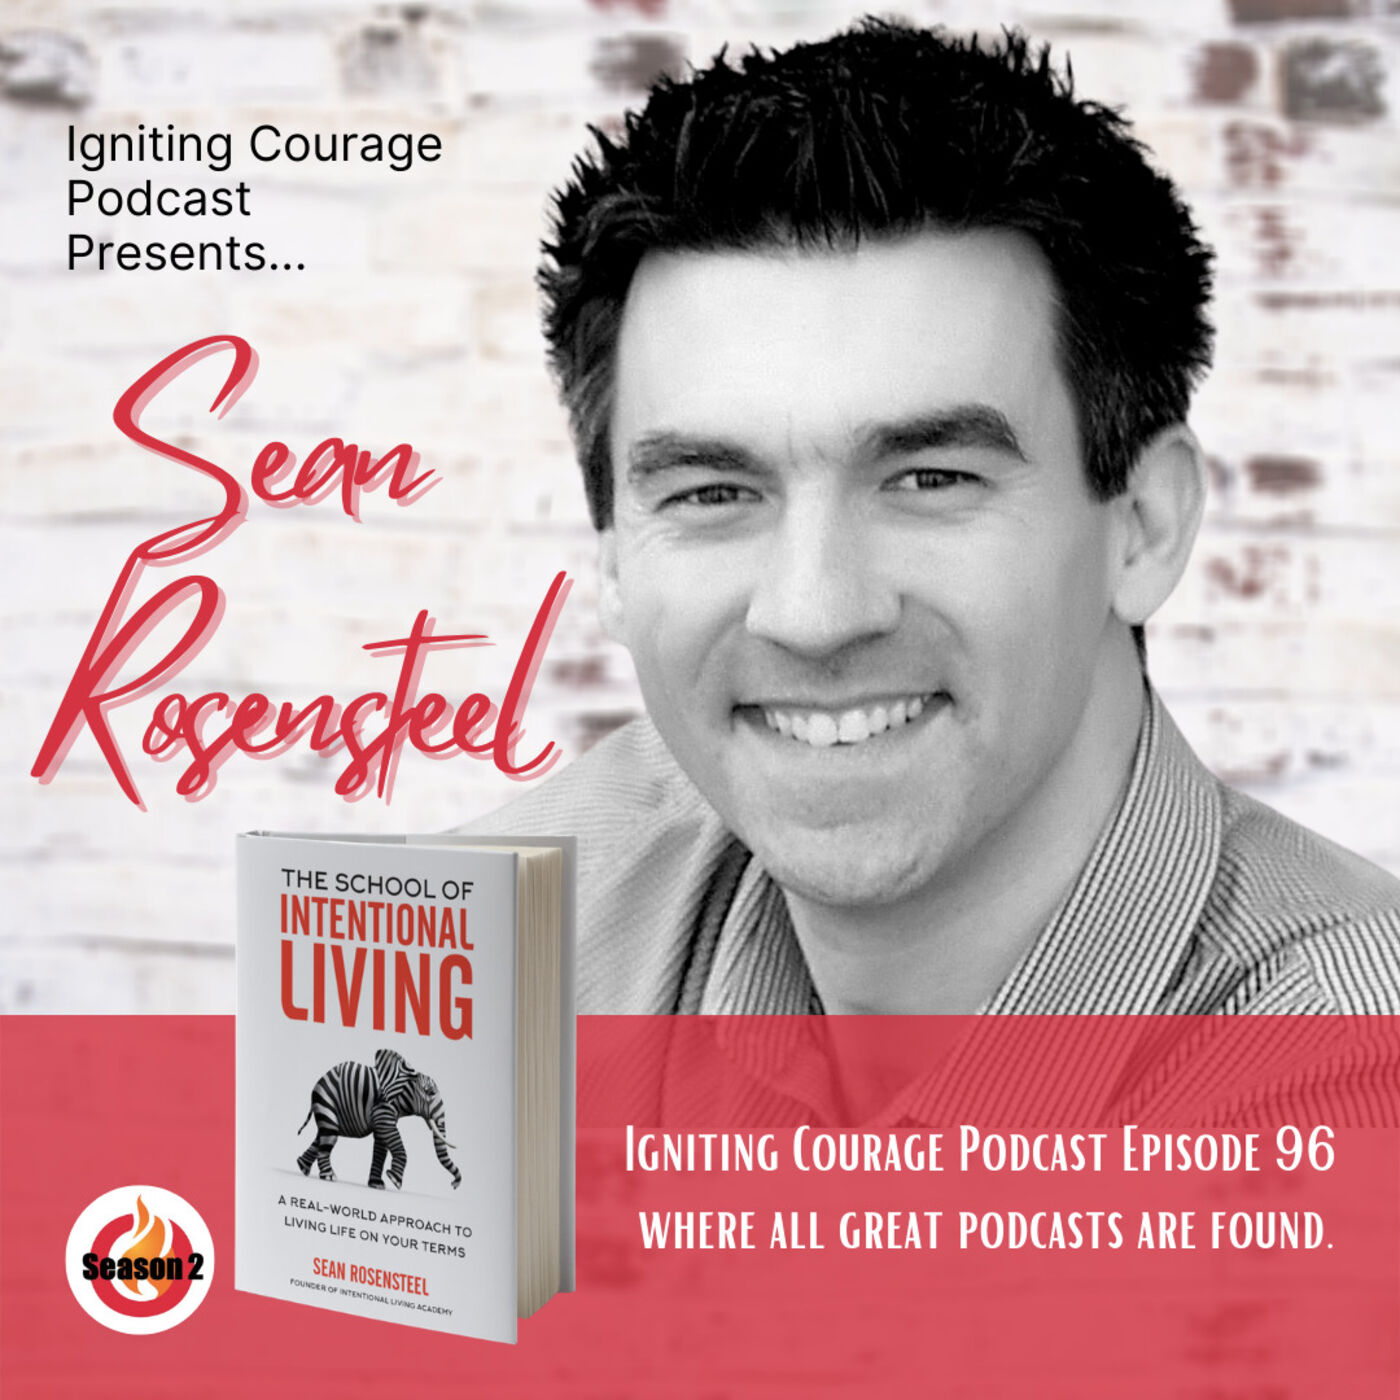 IGNITING COURAGE Podcast Episode 96: Sean Rosensteel, Author of The School of Intentional Living